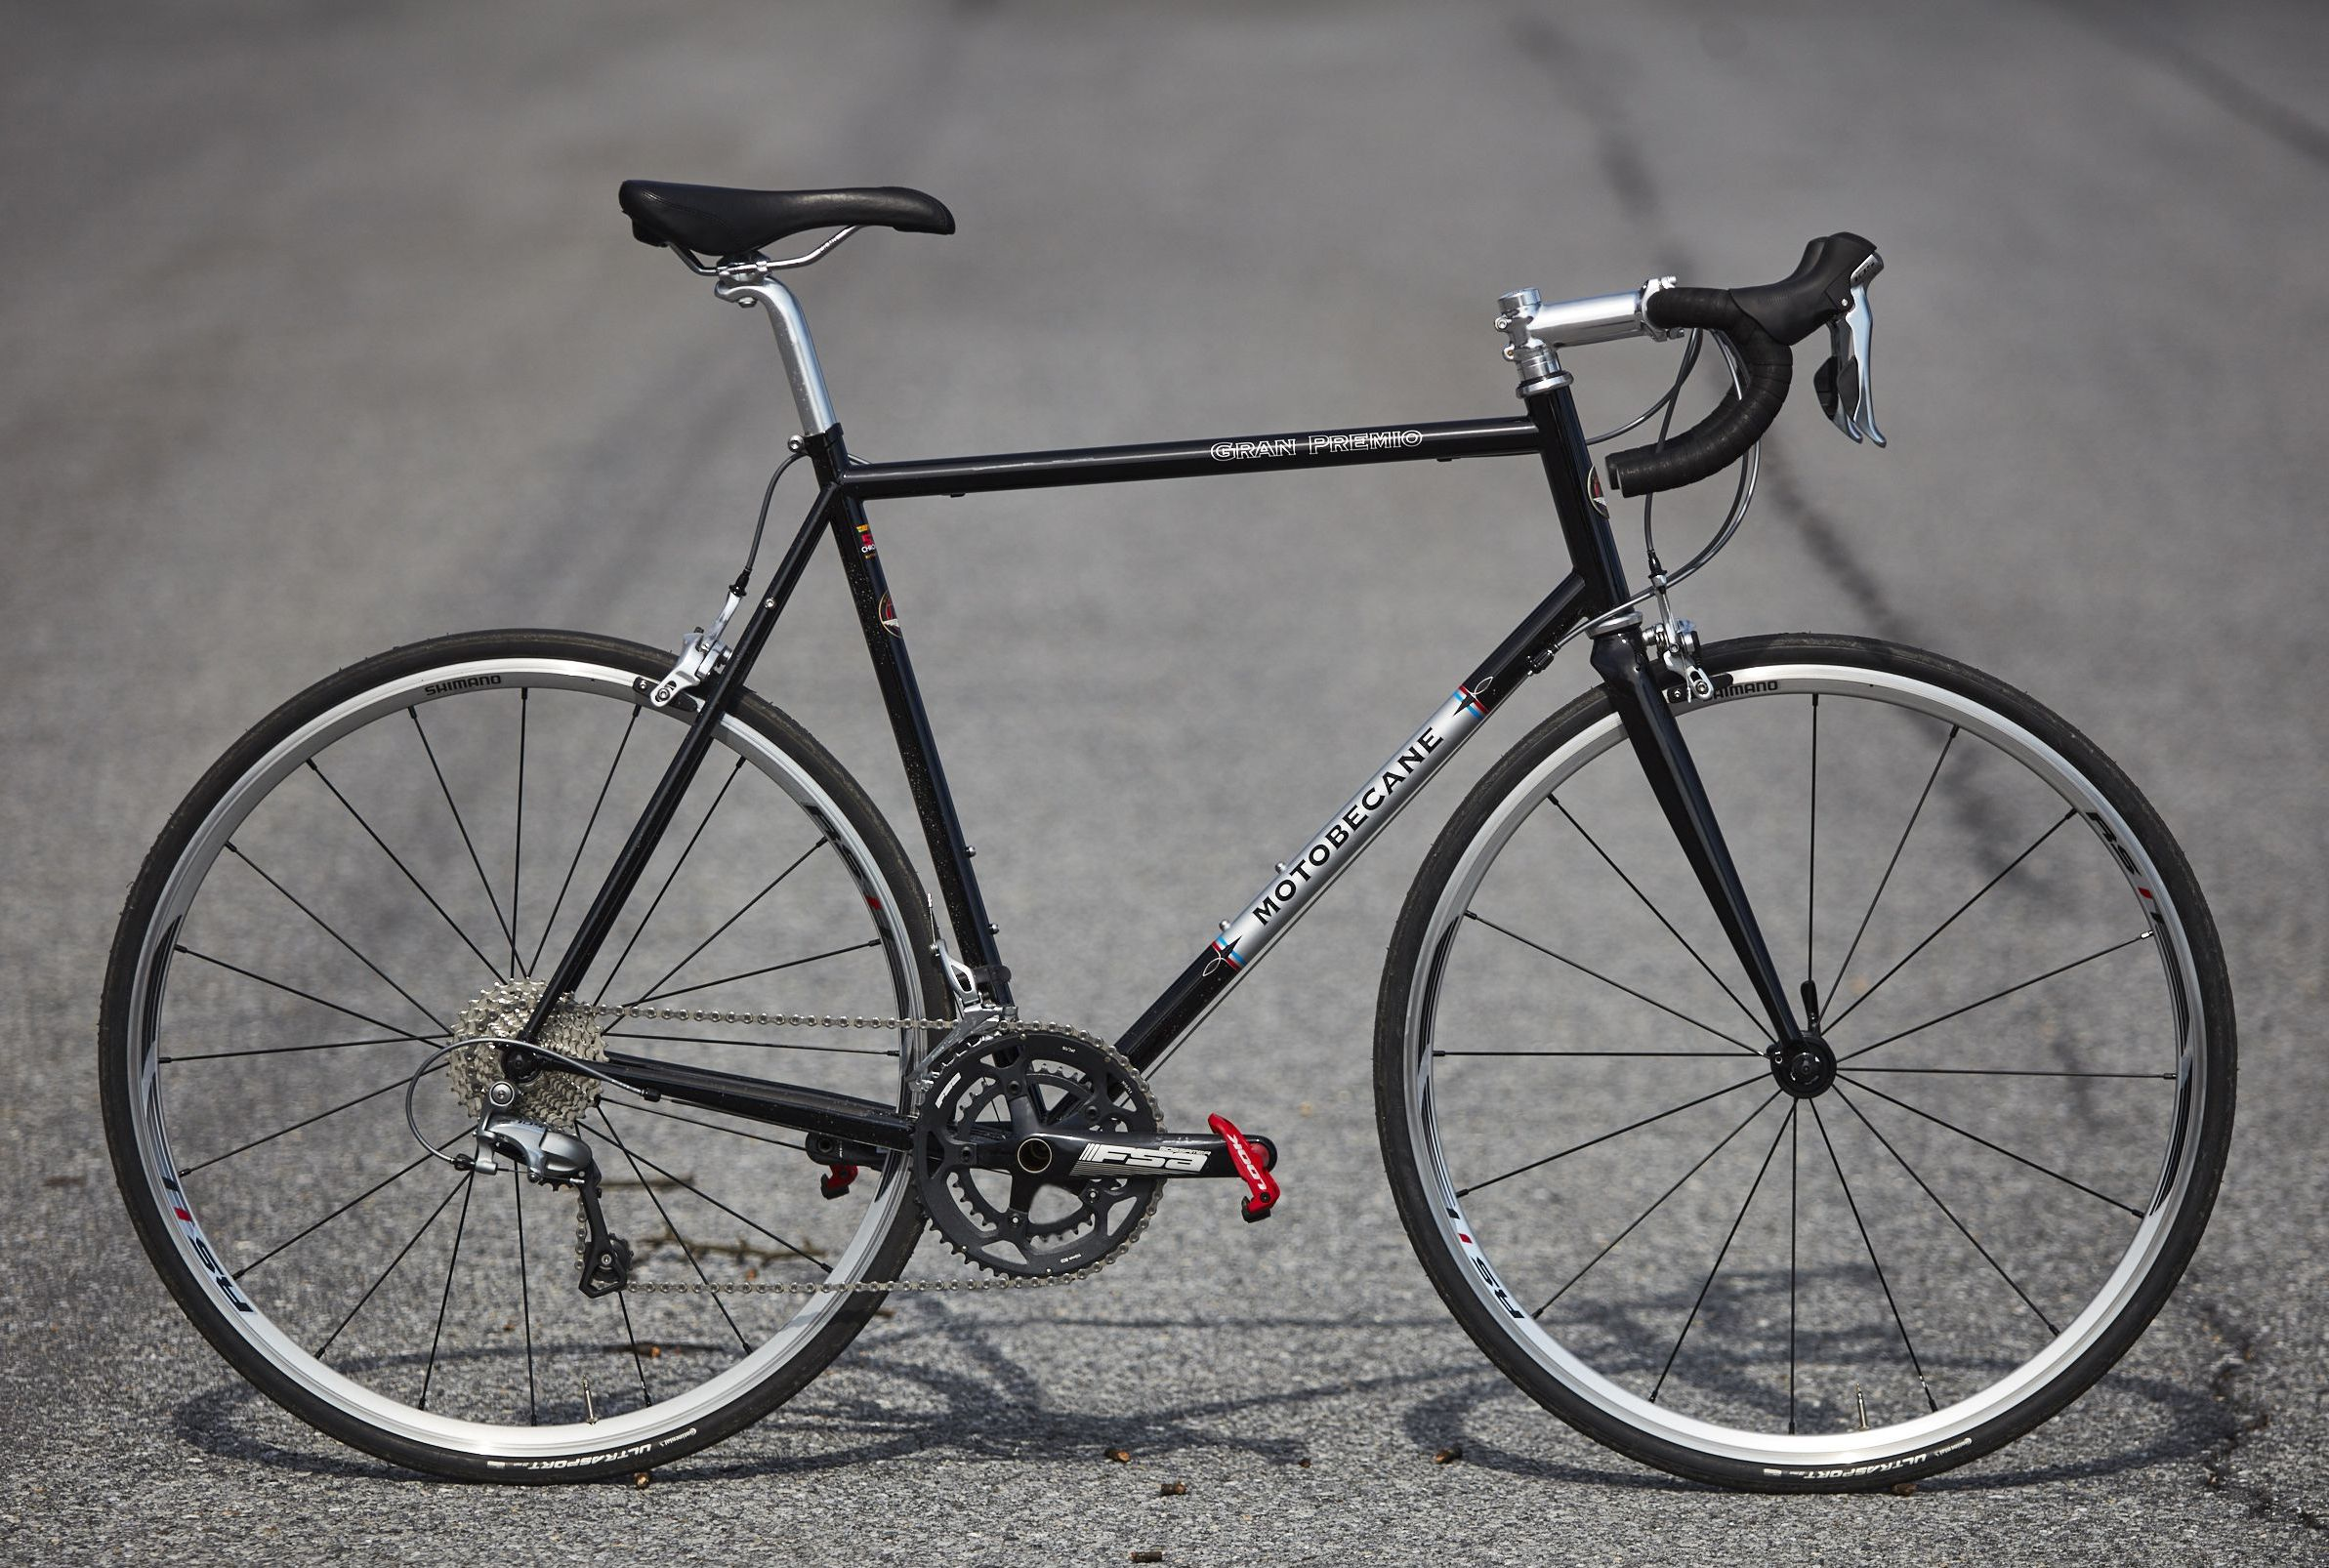 Smooth Ride, Big Value: The Motobecane Gran Premio Elite